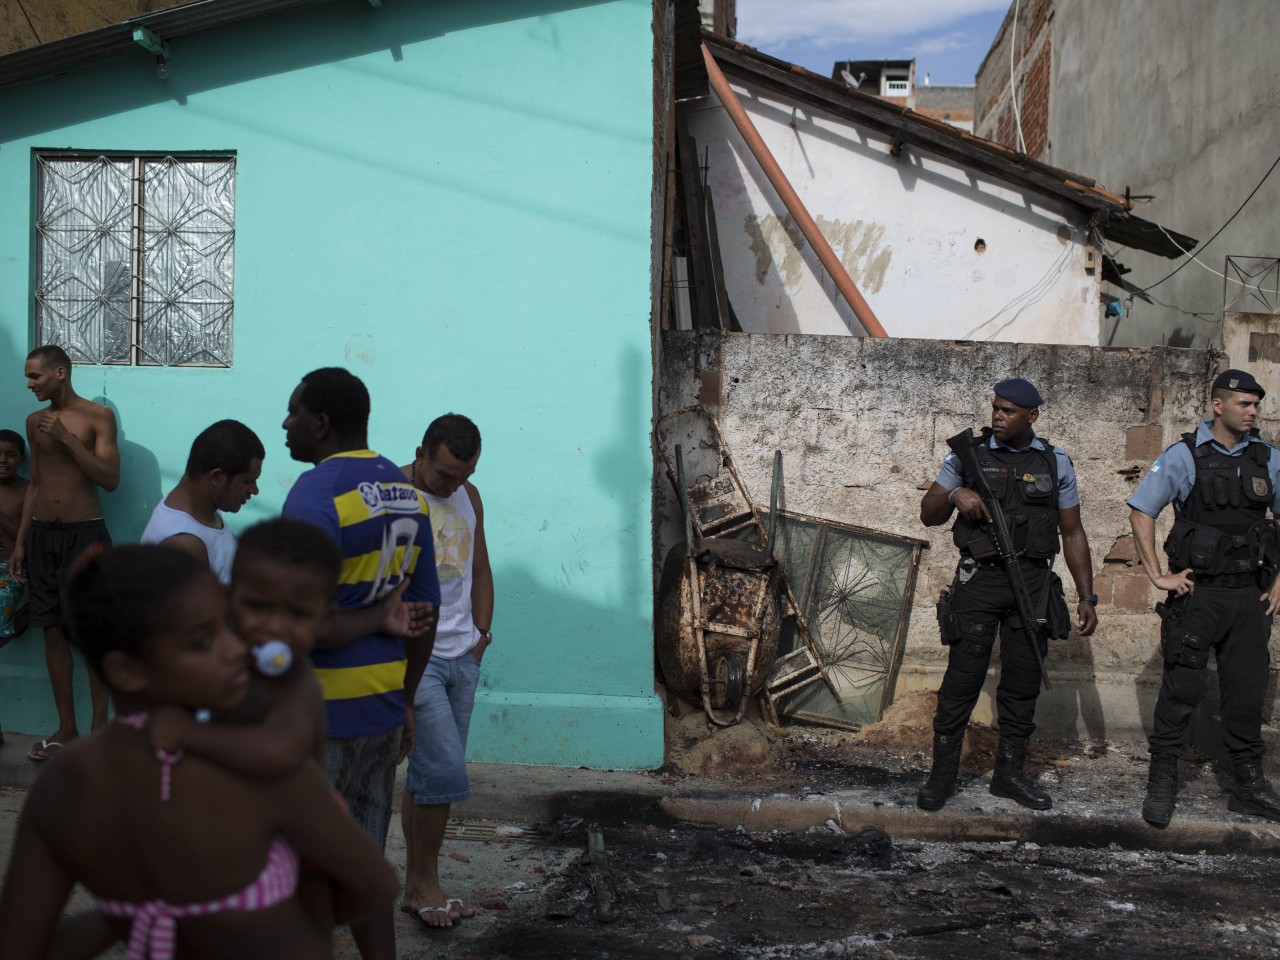 Rio Mare Favela Remains Occupied Ahead of World Cup